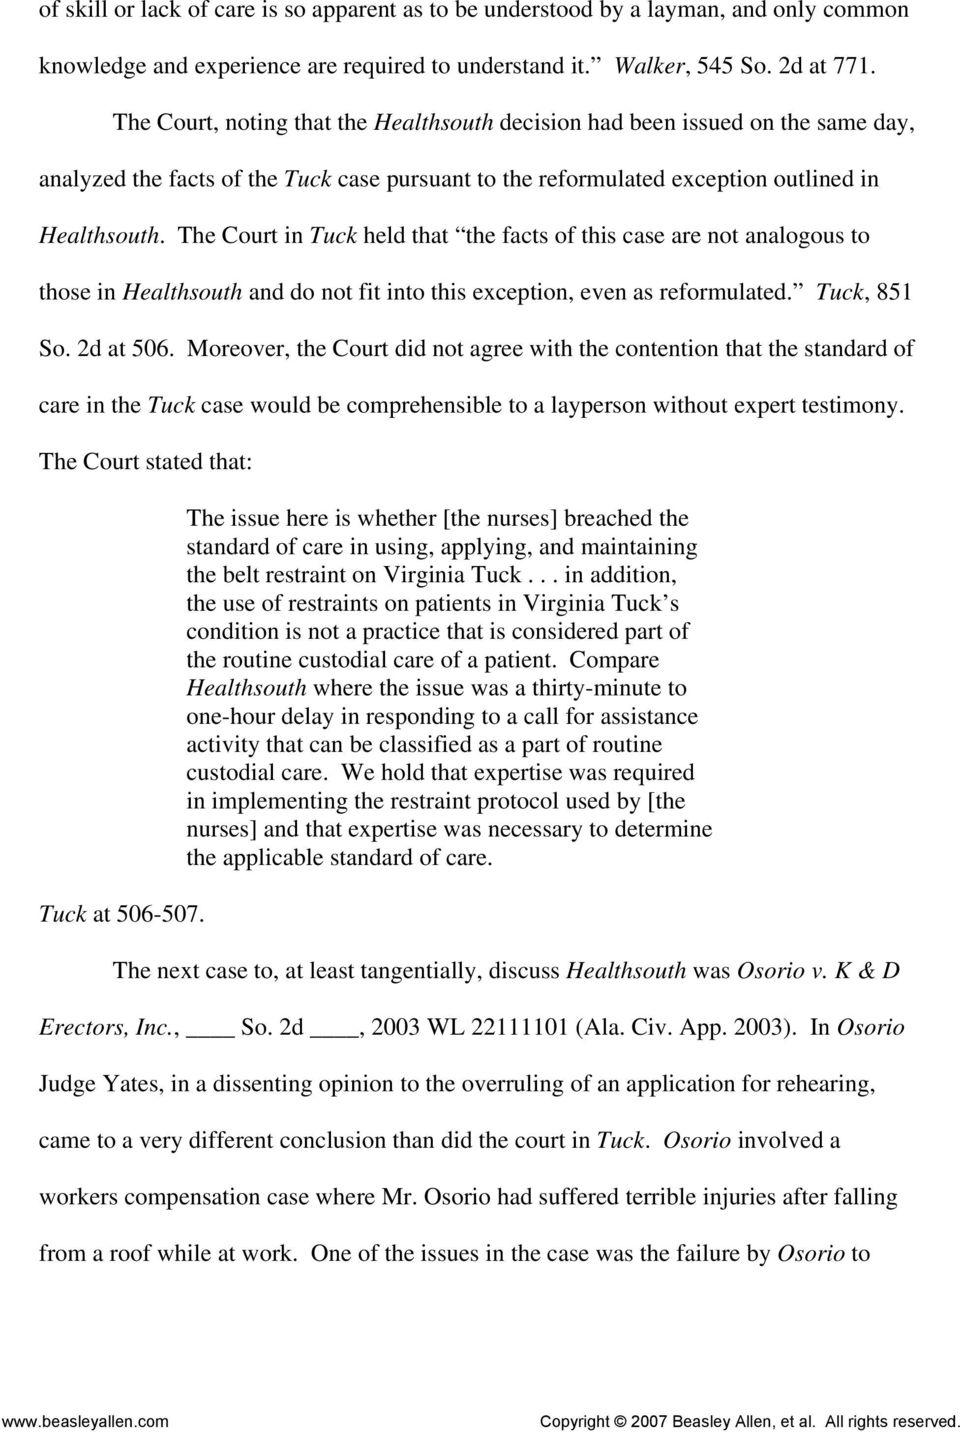 The Court in Tuck held that the facts of this case are not analogous to those in Healthsouth and do not fit into this exception, even as reformulated. Tuck, 851 So. 2d at 506.